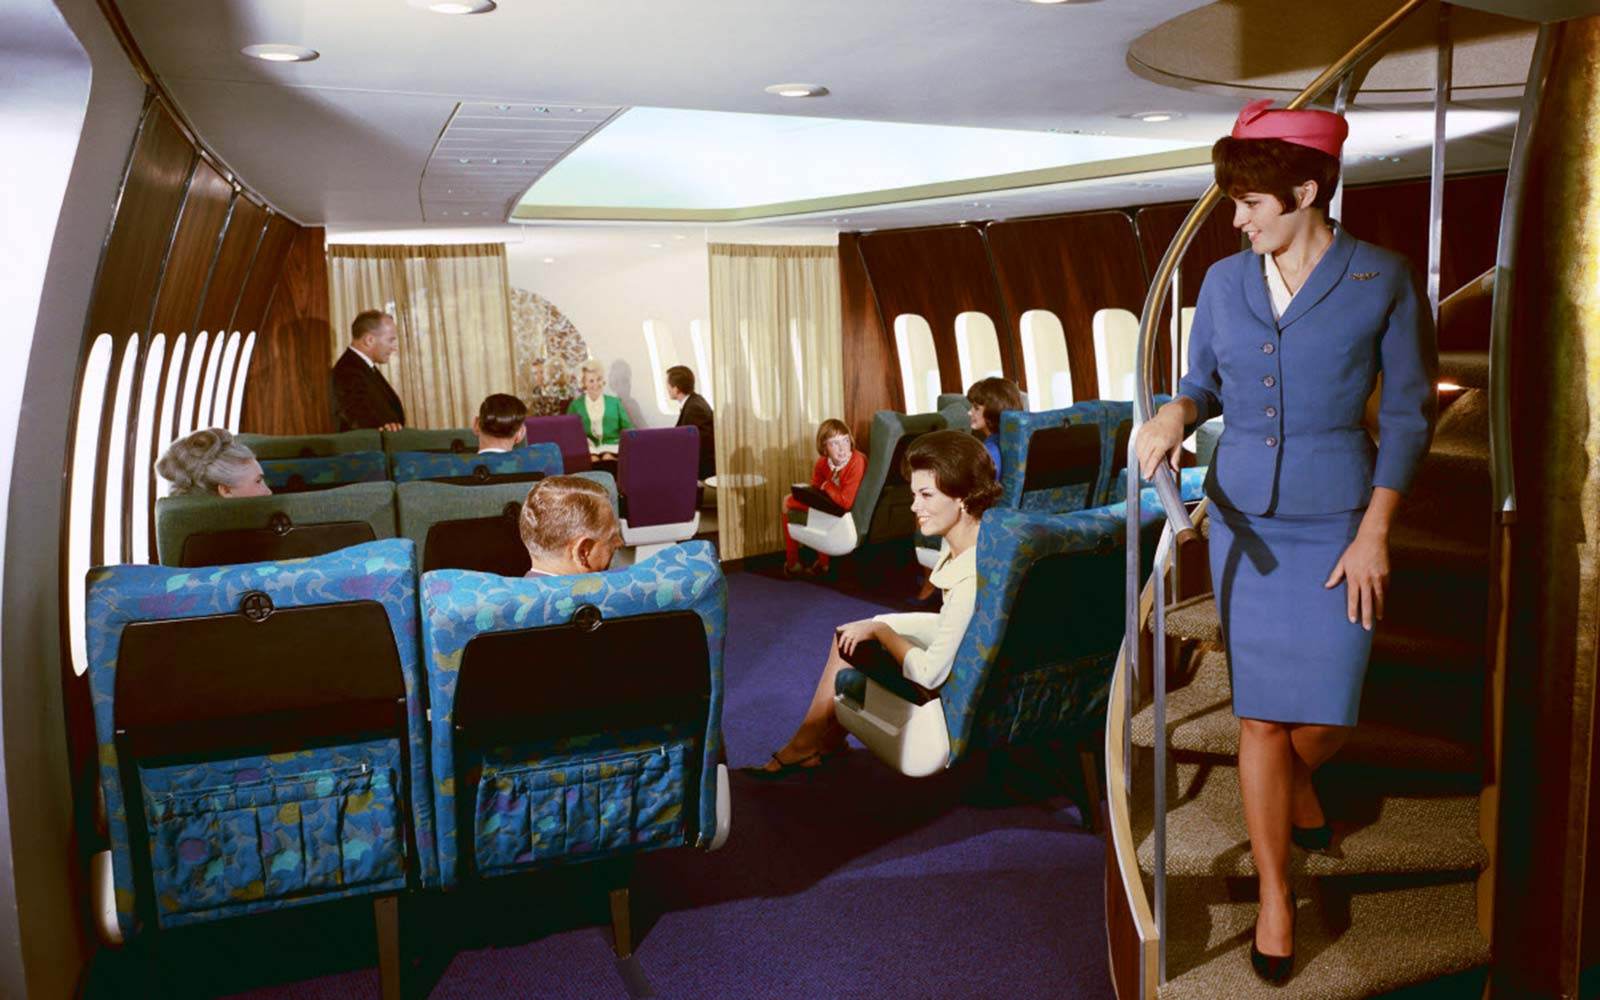 Vintage Historic Archival United Boeing 747 airplane interior 1970s